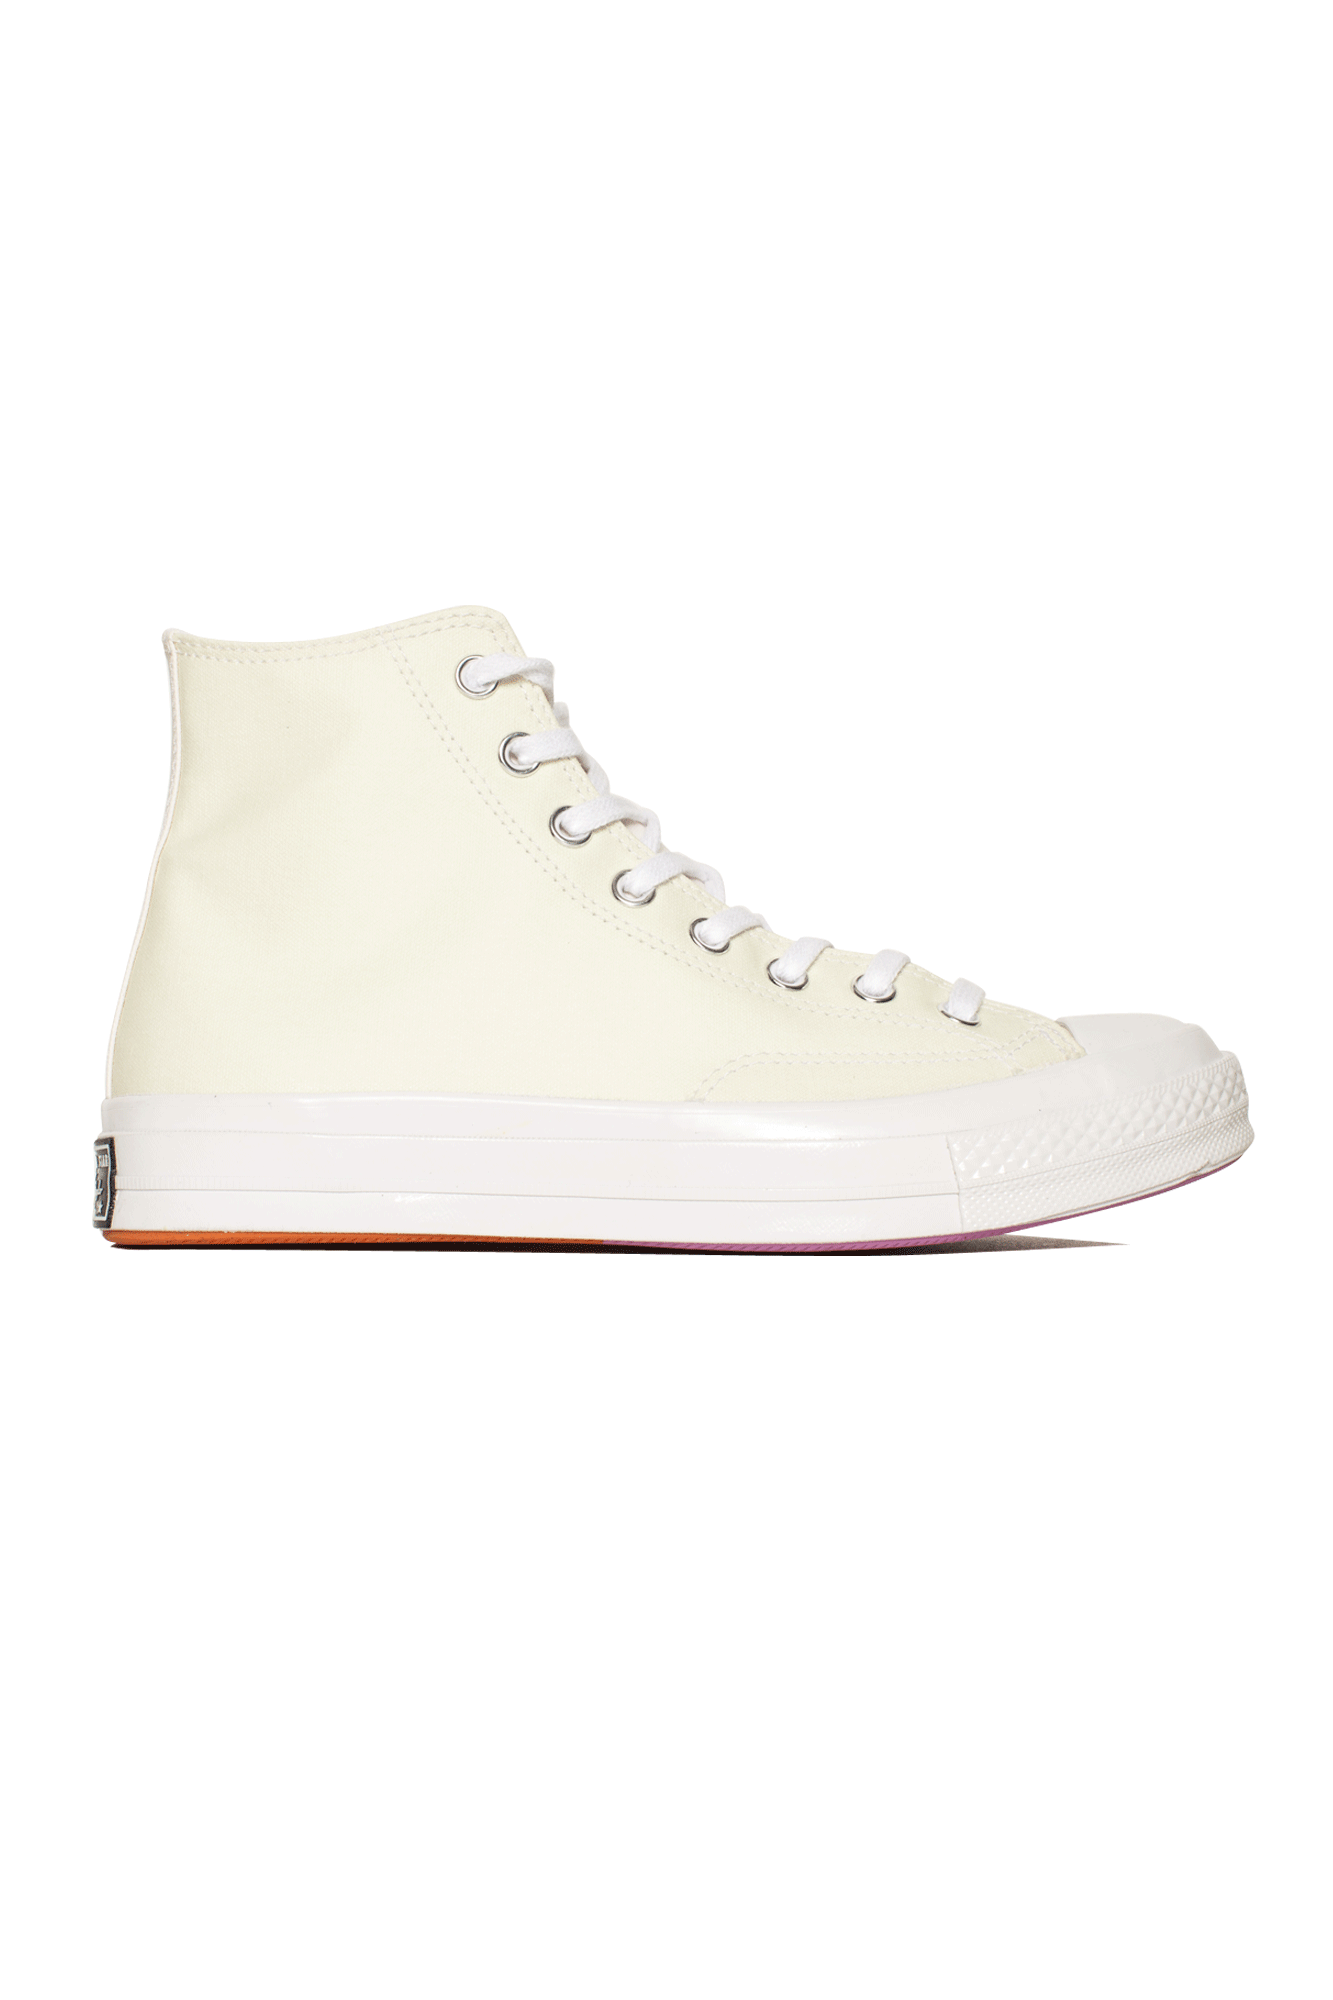 "Converse Sneakers Chuck 70 Hi ""UV"" X Chinatown Market Multicolor 166598C#000#102#4 - One Block Down"